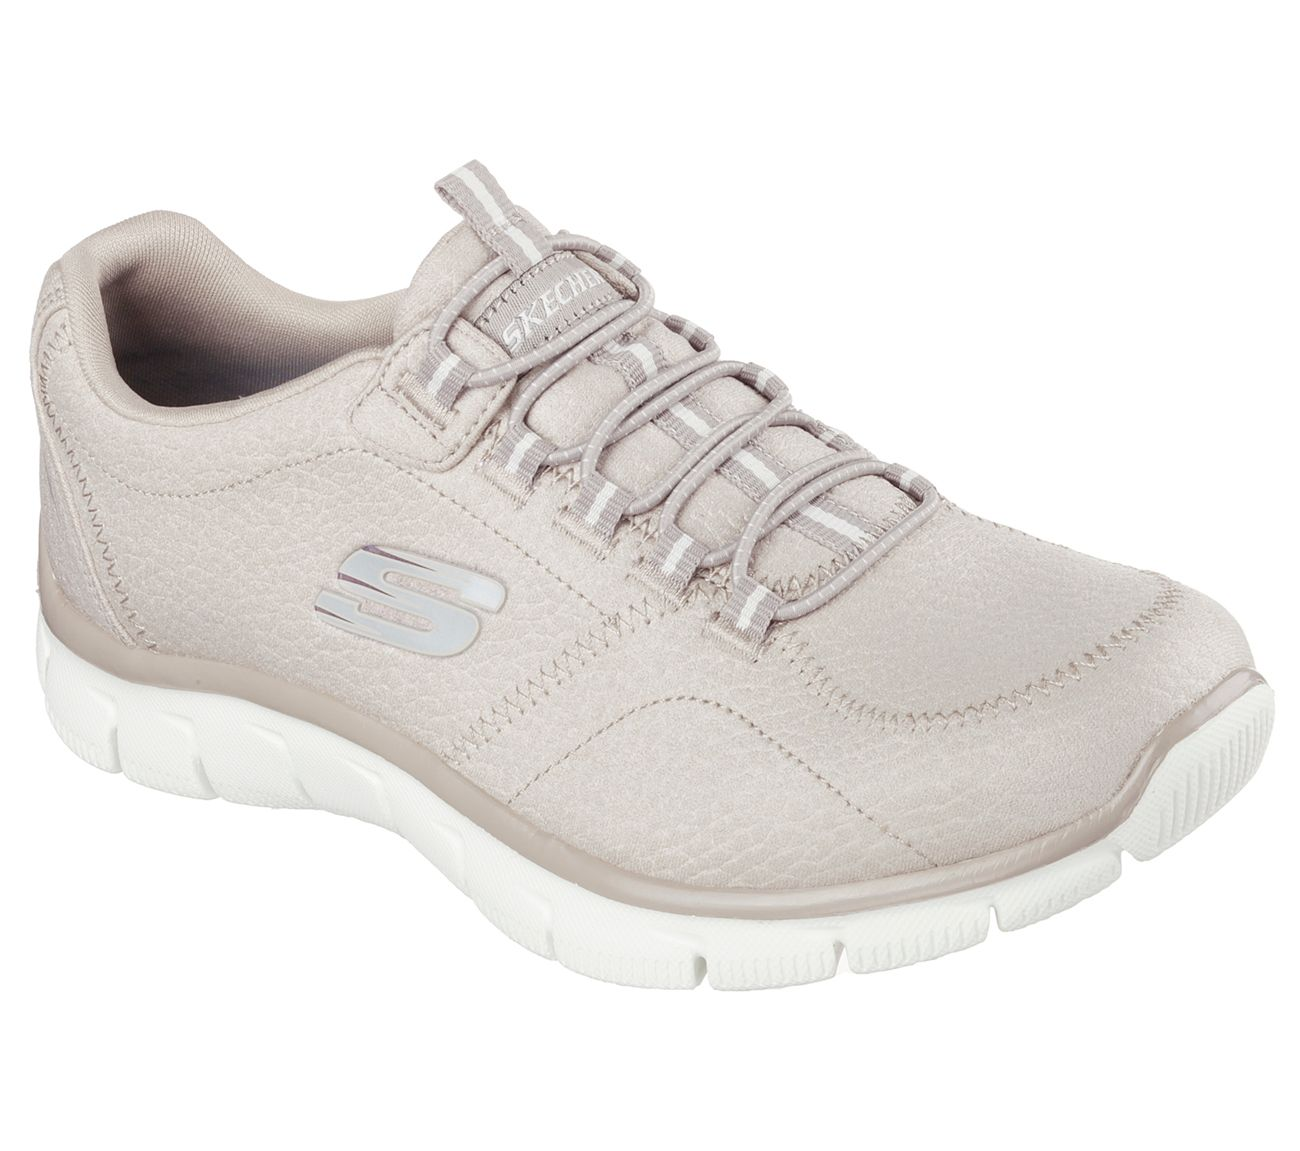 Relaxed Fit: Empire Take Charge | Skechers relaxed fit